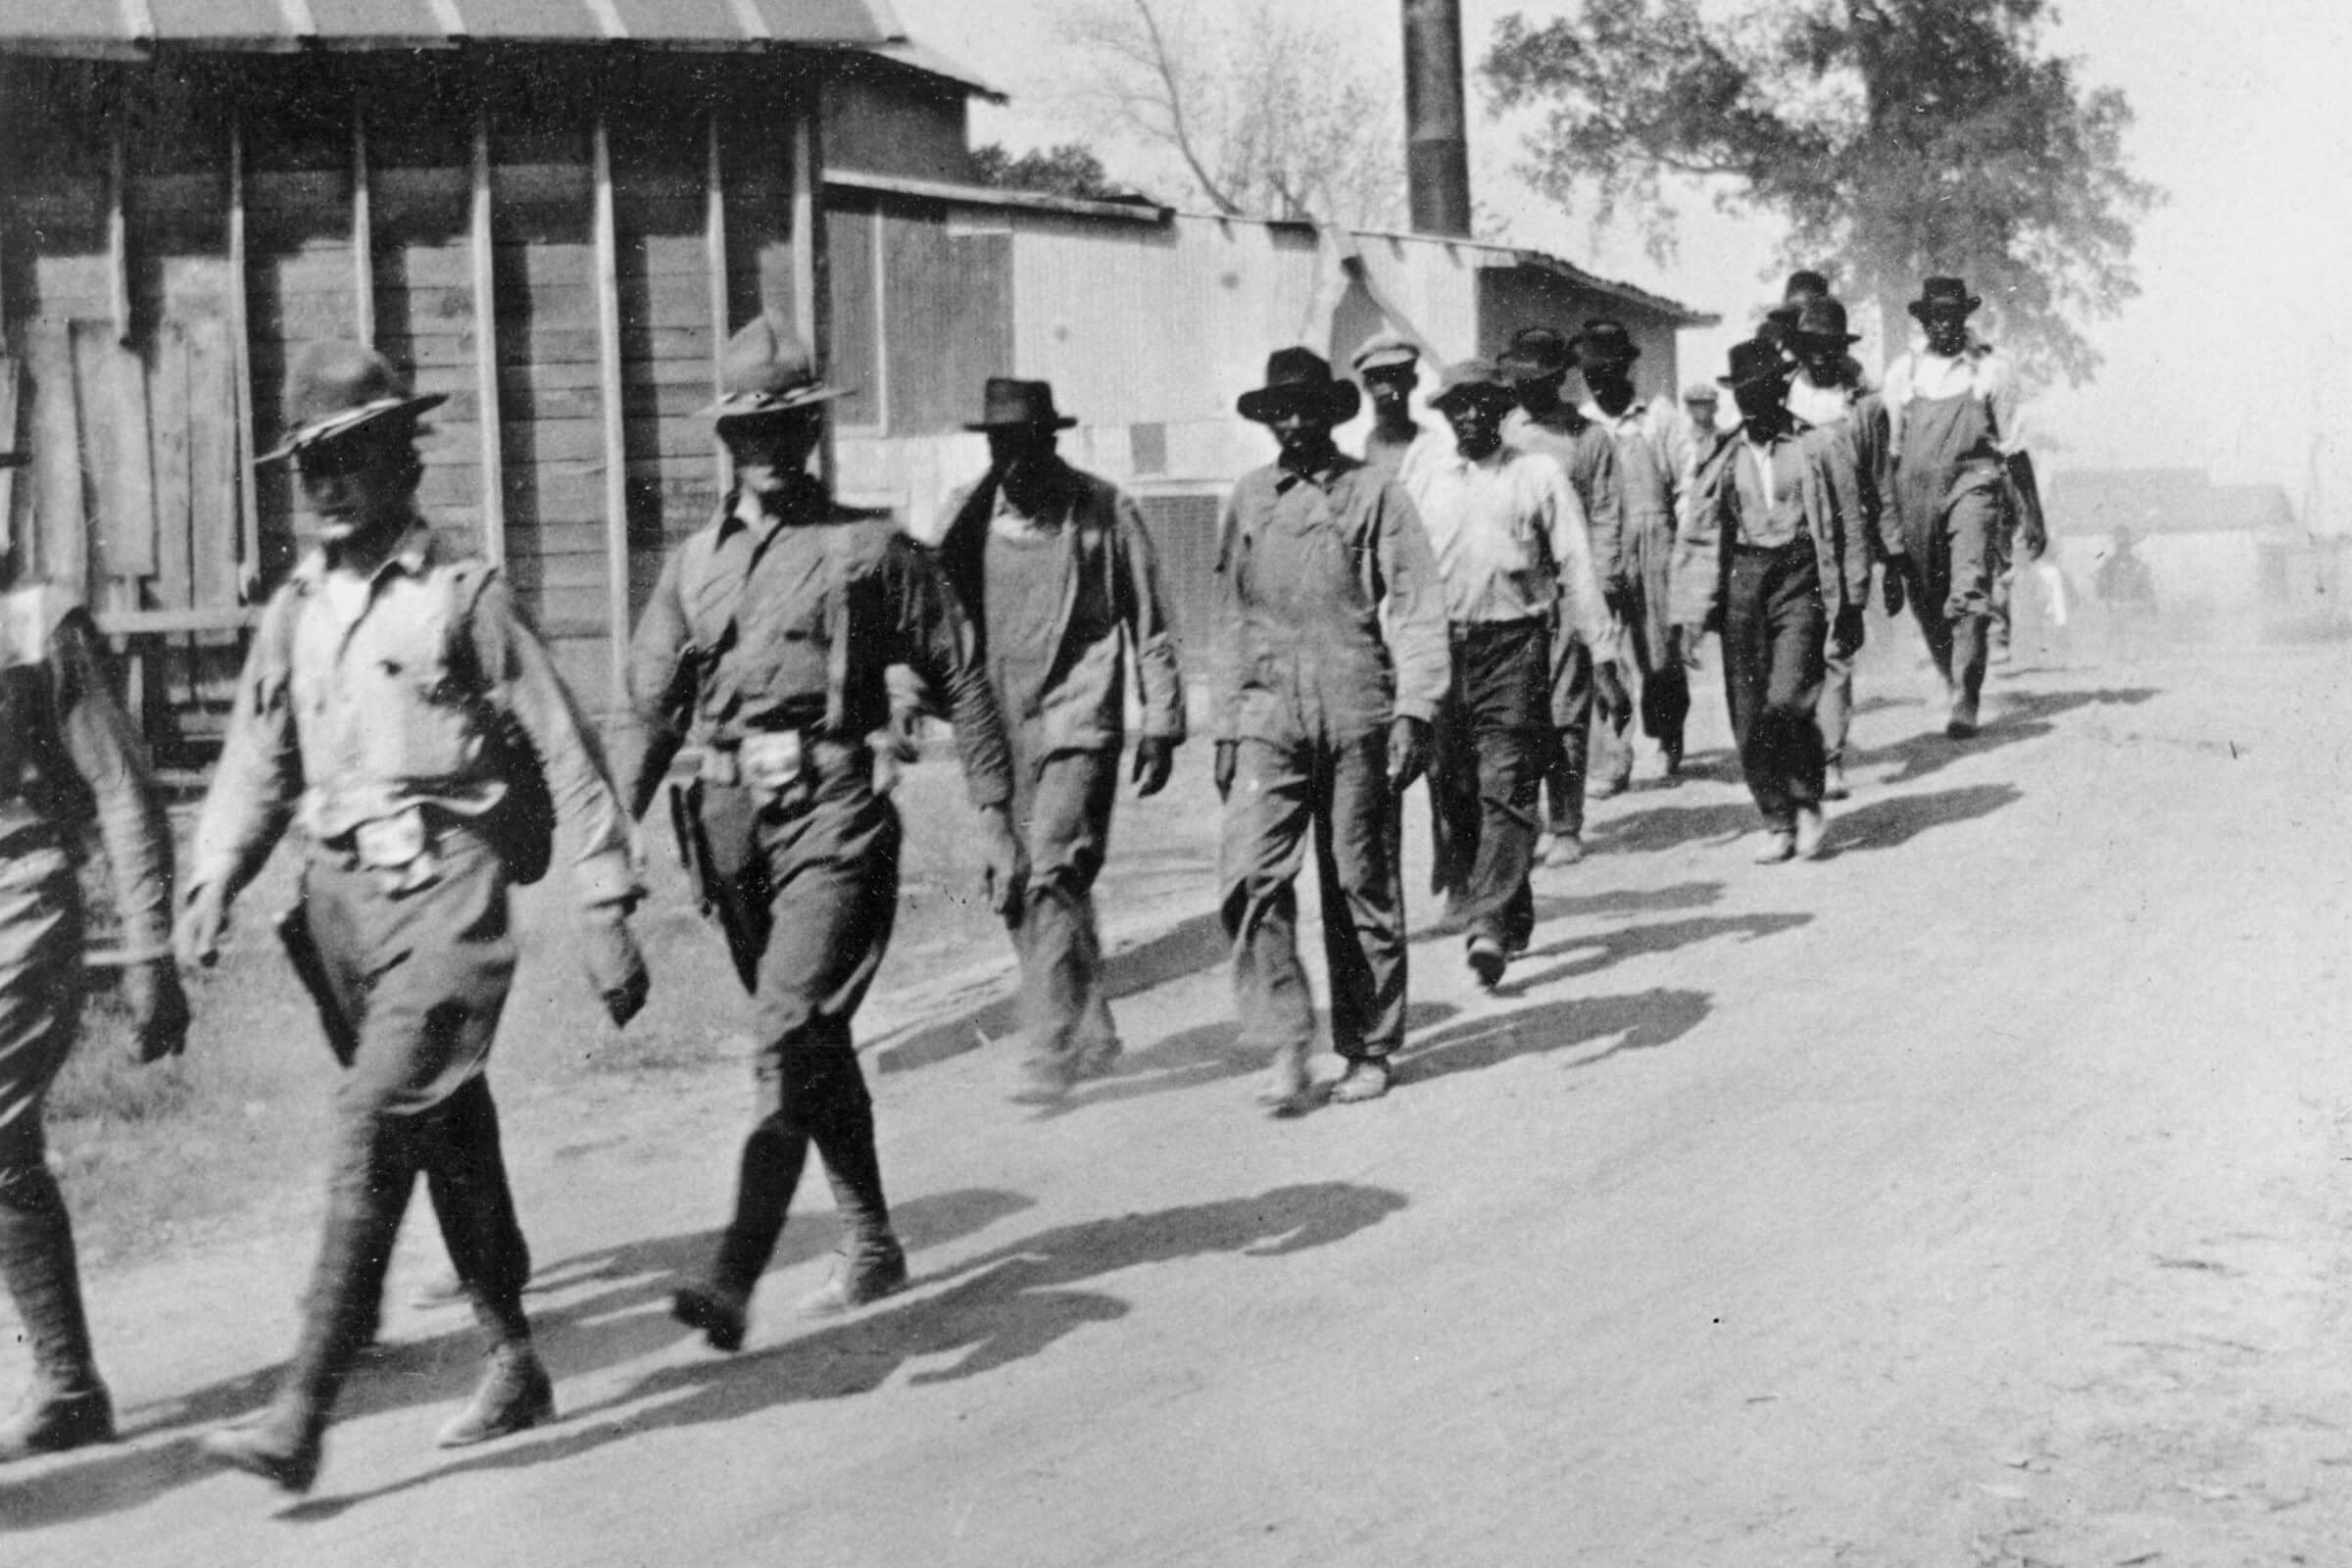 Soldiers from Camp Pike lead black men into Elaine in 1919.